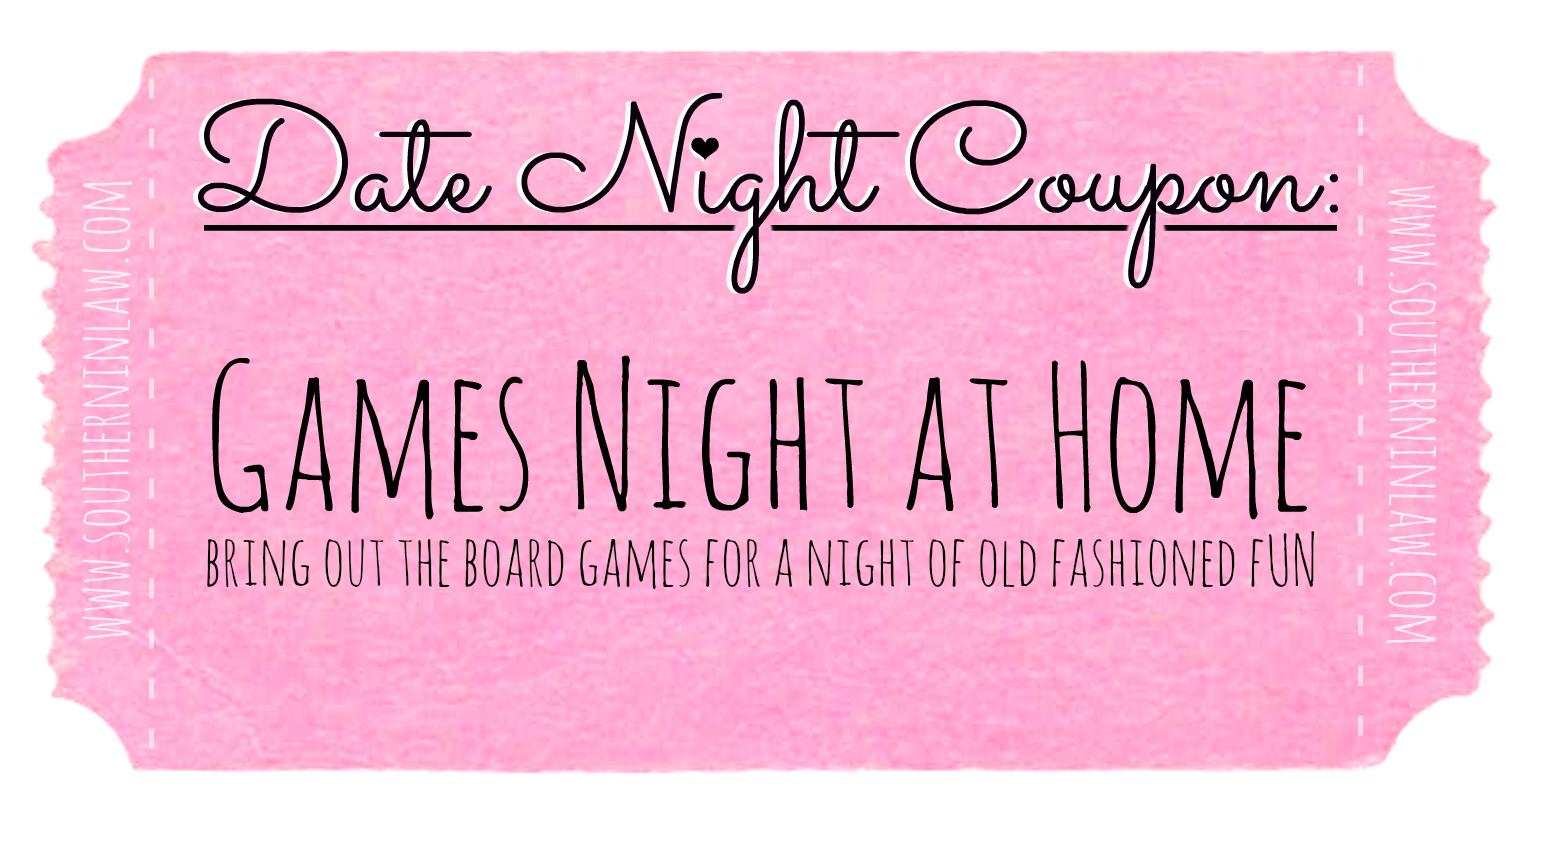 Cheap Date Night Ideas - Date Night Coupons - Have A Games Night at Home